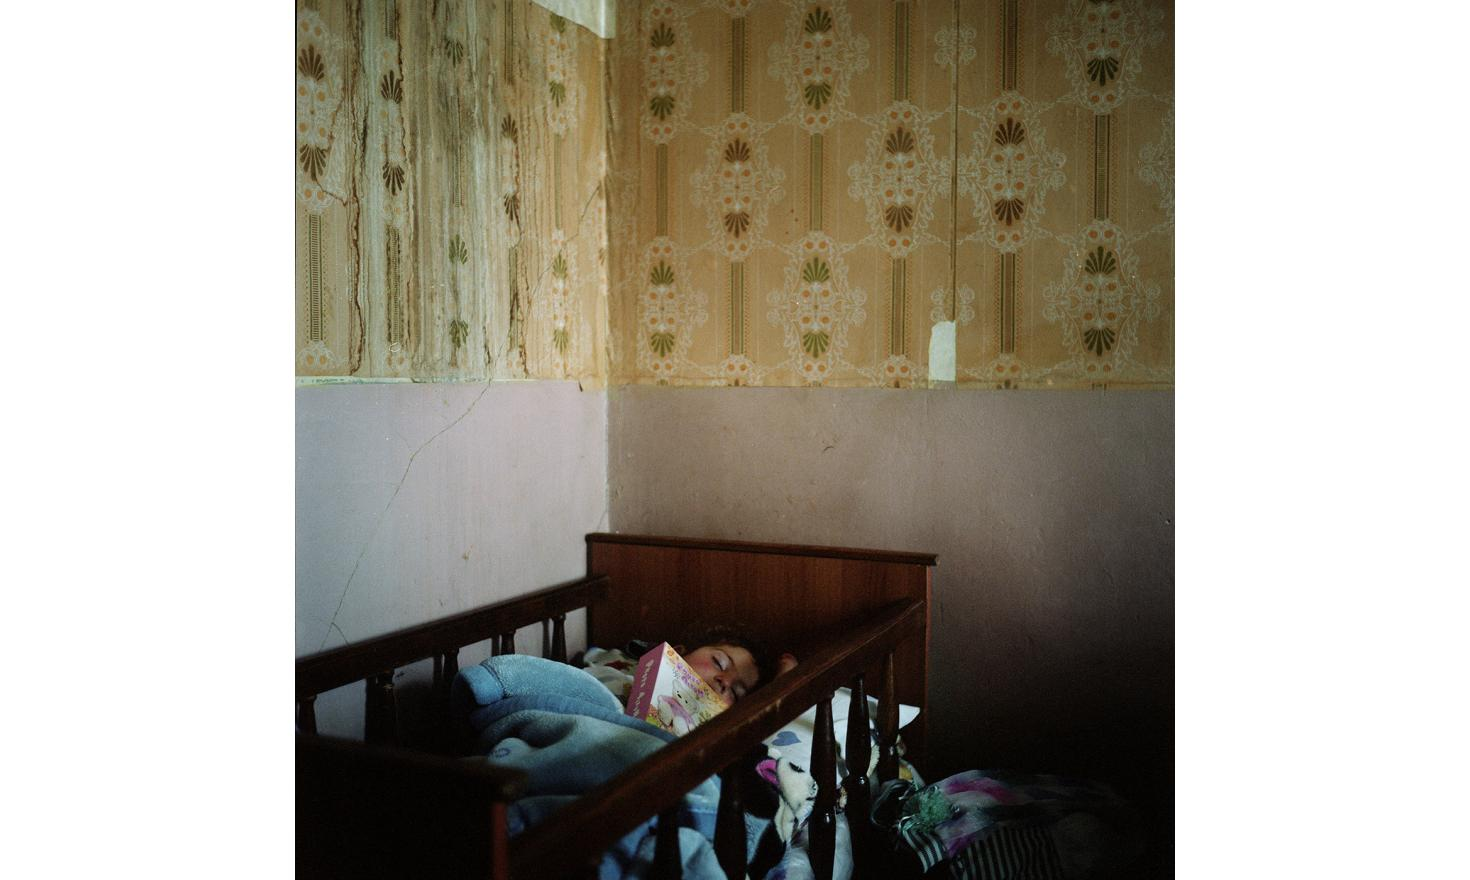 Lilith, Anoush's daugther, fell asleep with the photo album of her father. He went to Russia to work for years to earn money to build them a house in the village.